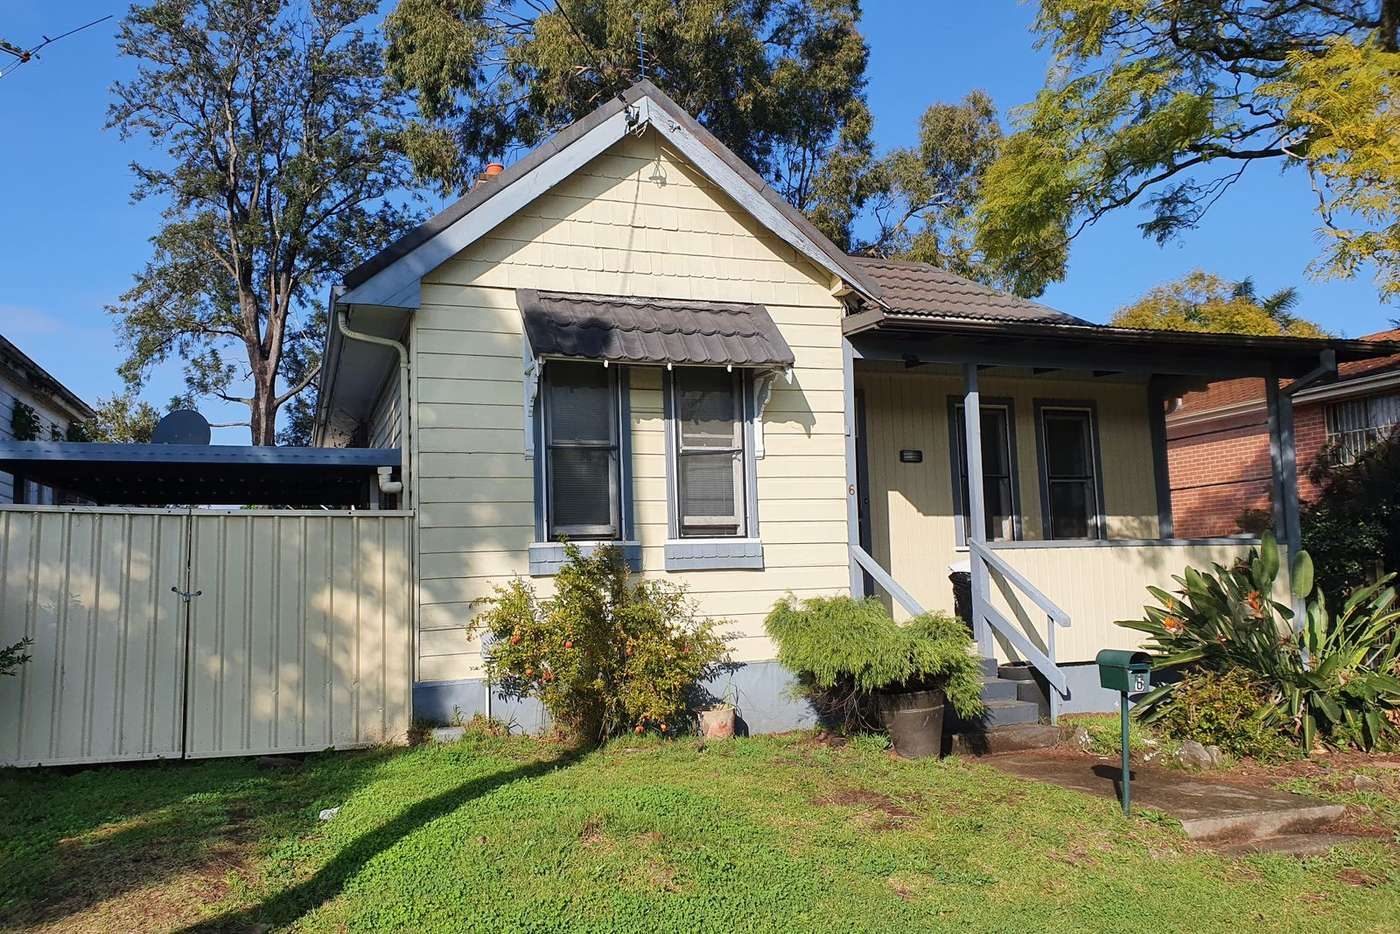 Main view of Homely house listing, 6 Pine Road, Auburn NSW 2144